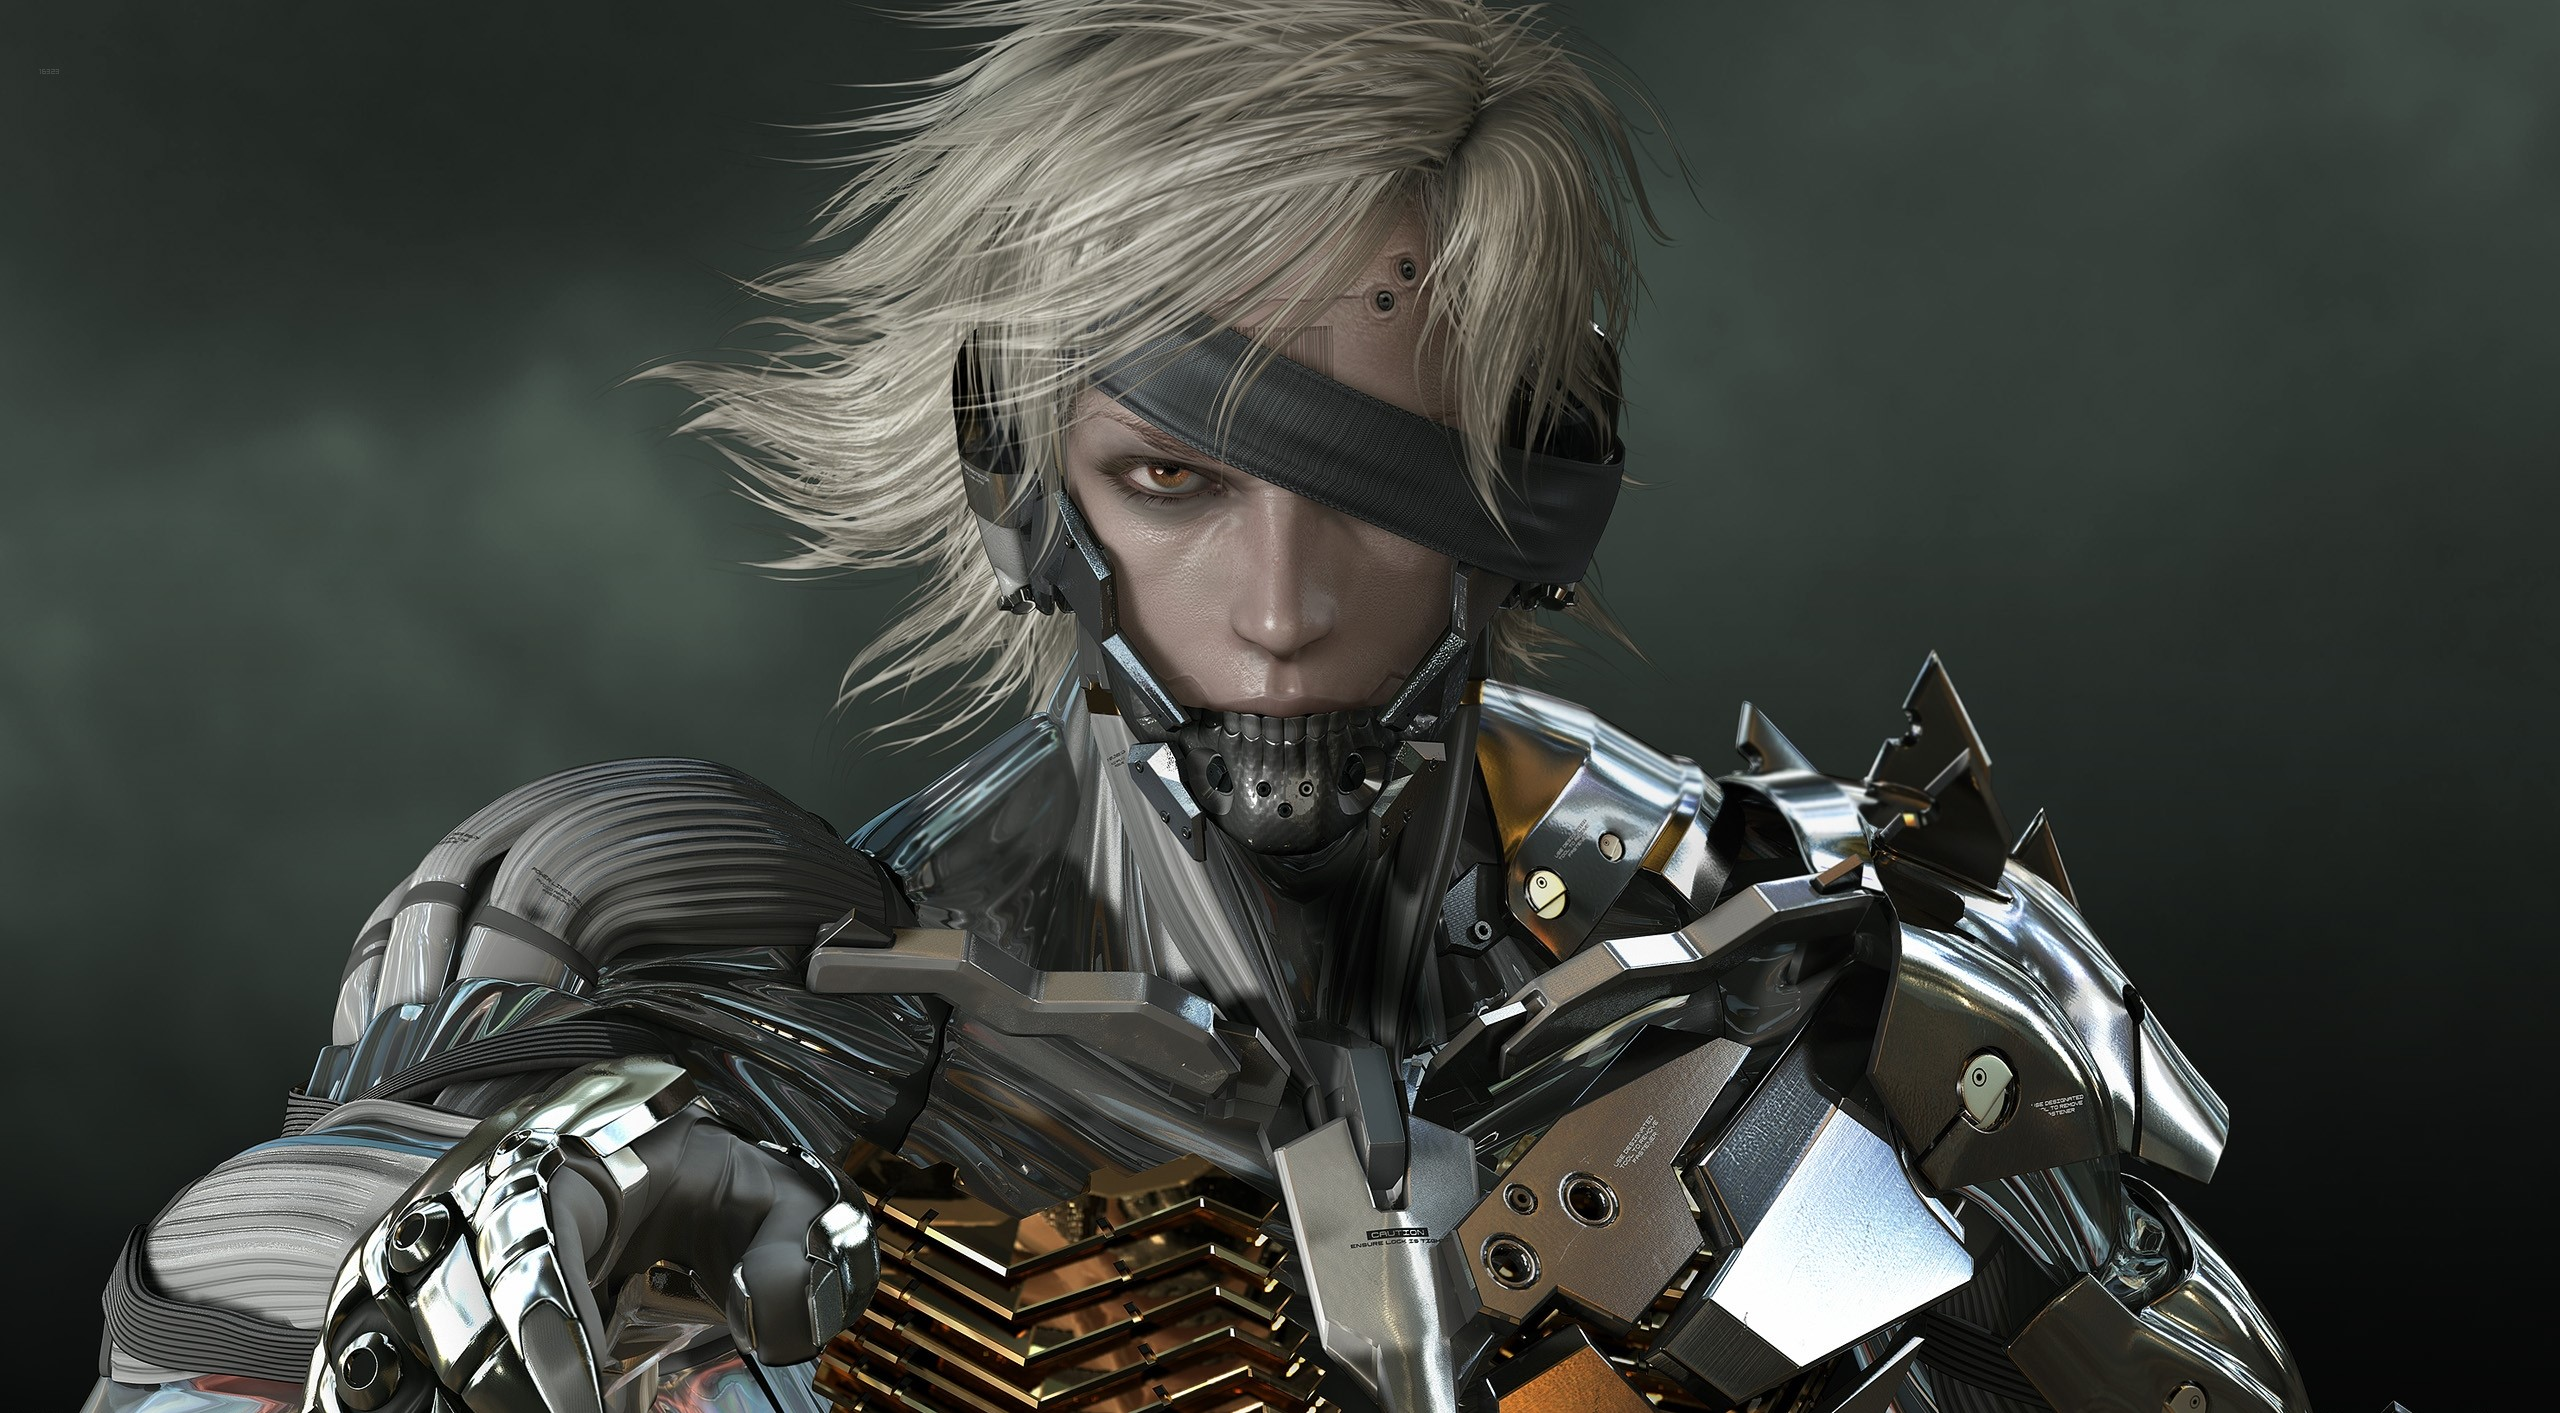 55 metal gear rising revengeance hd wallpapers background images hd wallpaper background image id676329 voltagebd Choice Image